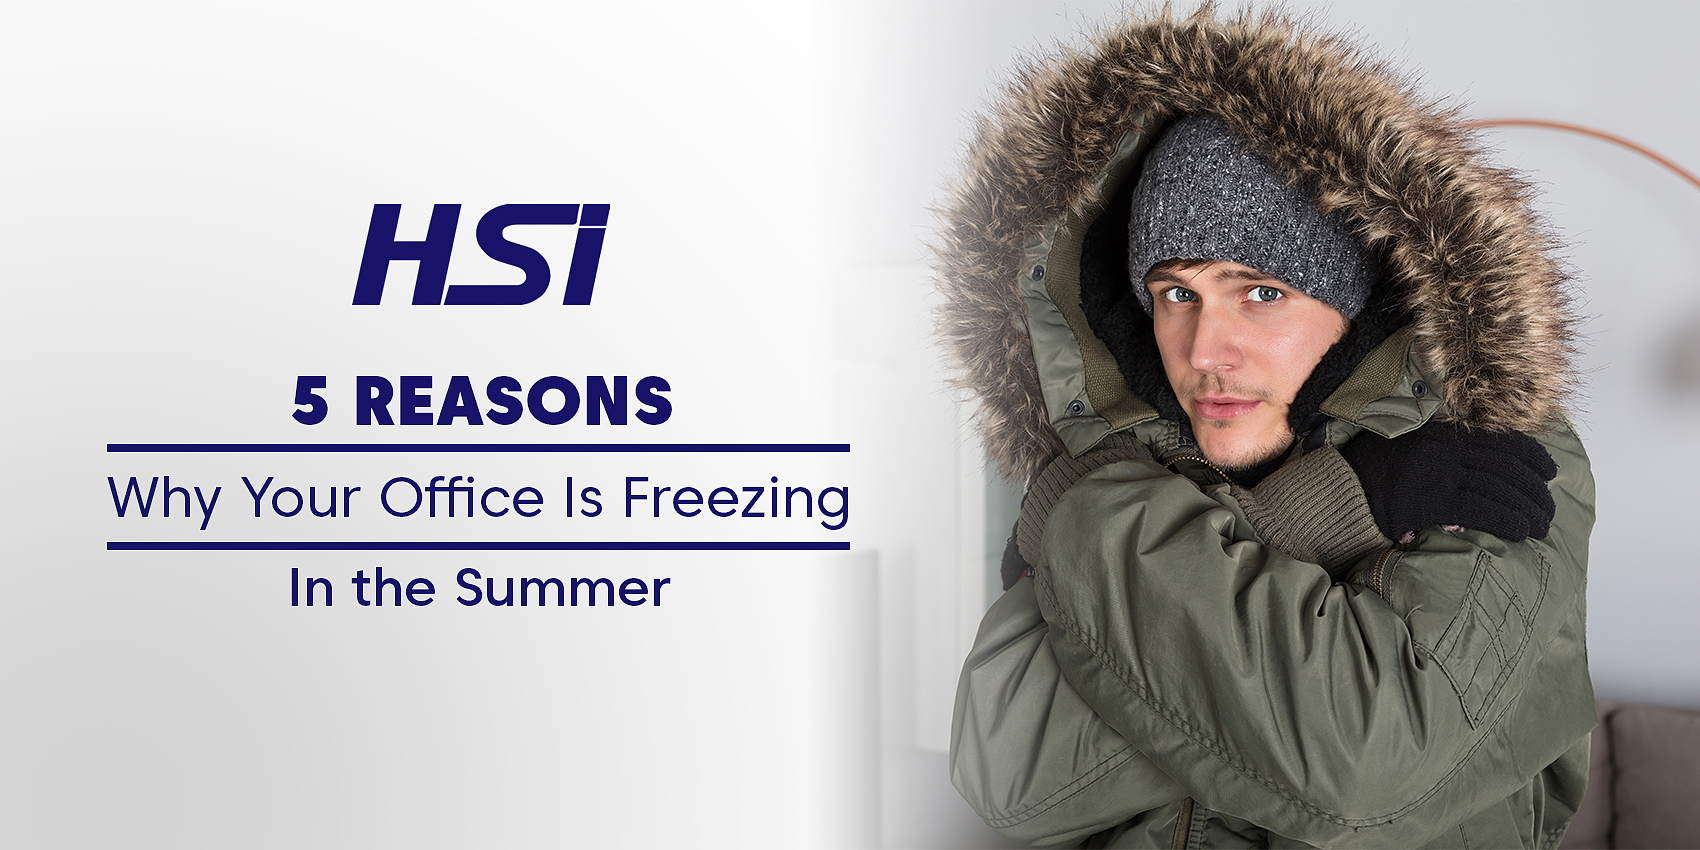 5 Reasons Why Your Office Is Freezing In the Summer